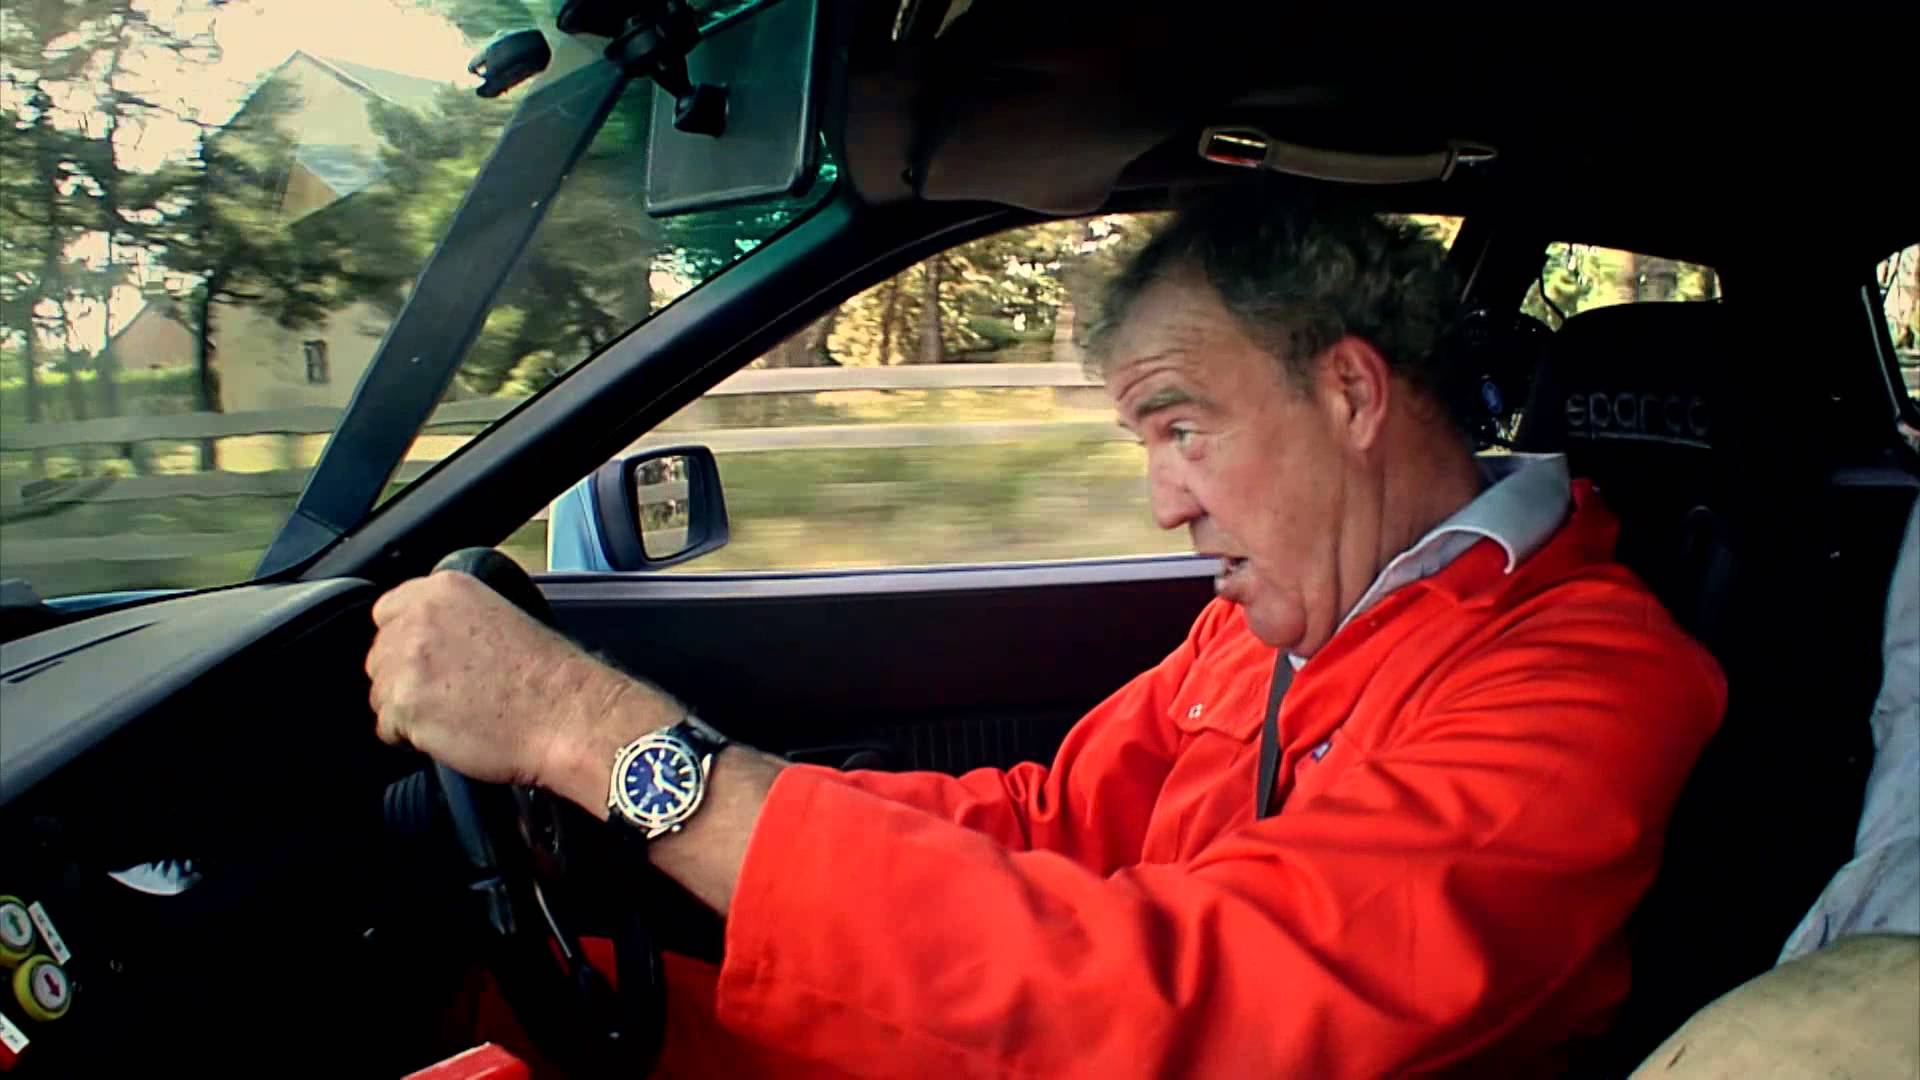 top gear series 22 episode 3 trailer top gear bbc inthefame. Black Bedroom Furniture Sets. Home Design Ideas